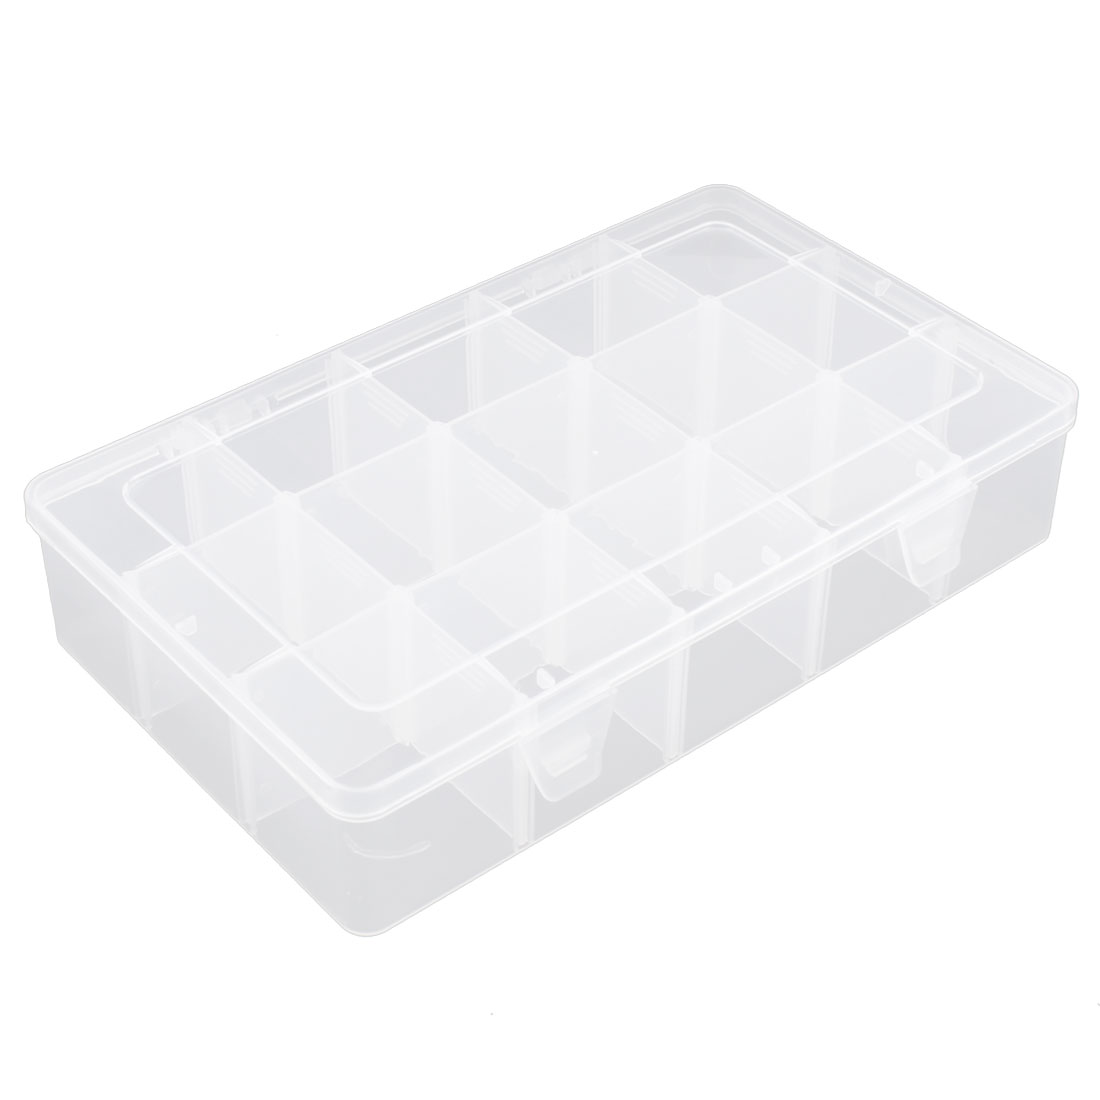 Jewelry Screws Plastic Multipurpose 18 Slot Storage Case Box Organizer Conatiner